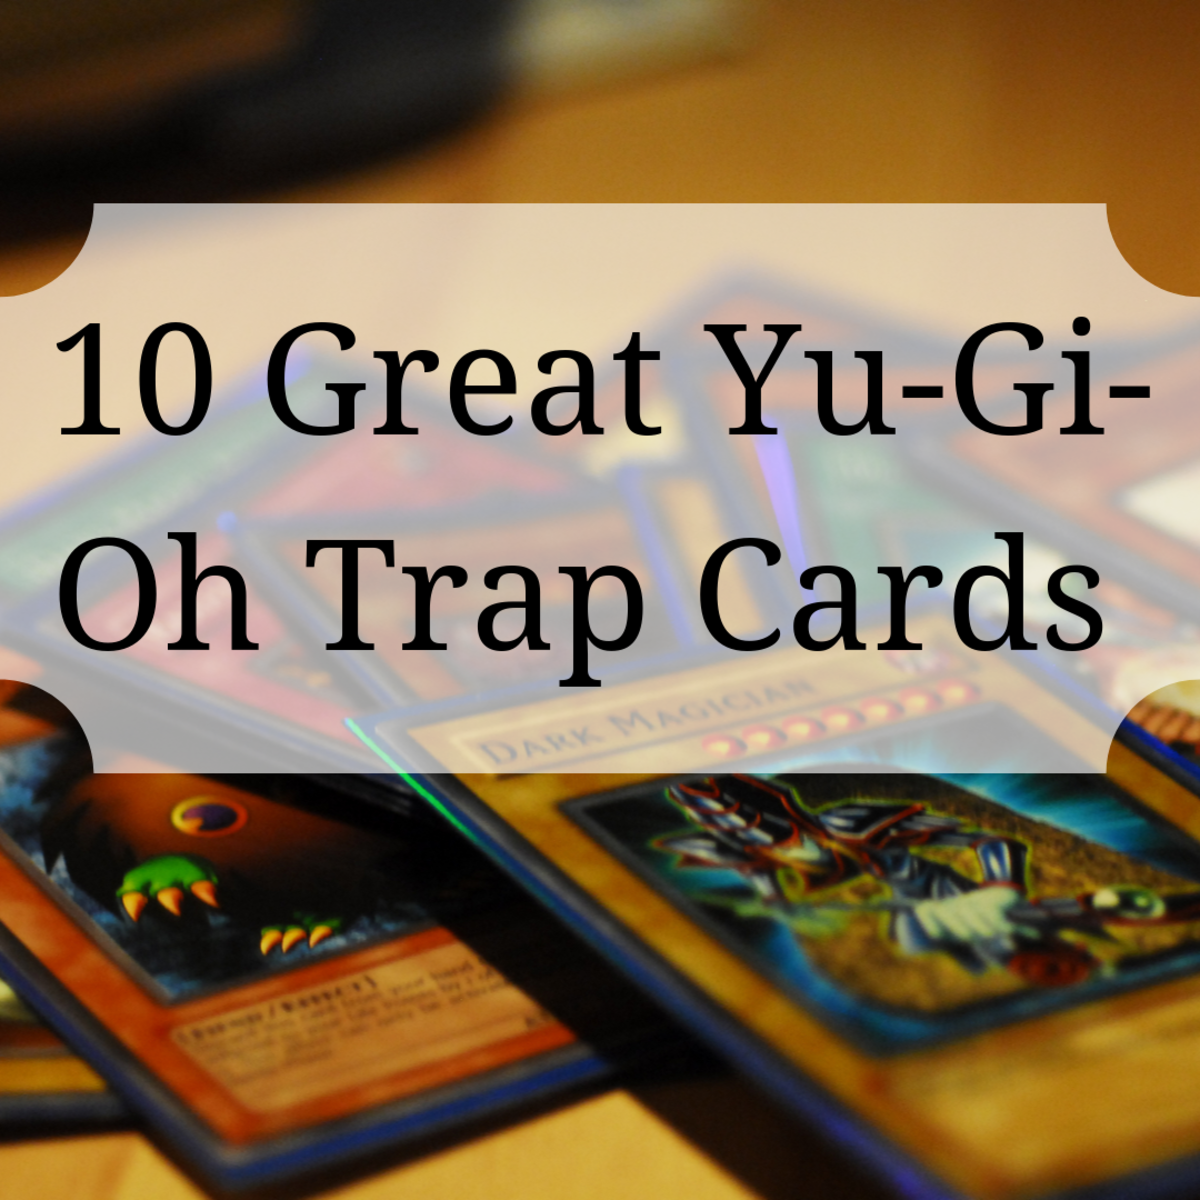 Ten Yu-Gi-Oh Trap Cards That Can Go in Any Deck